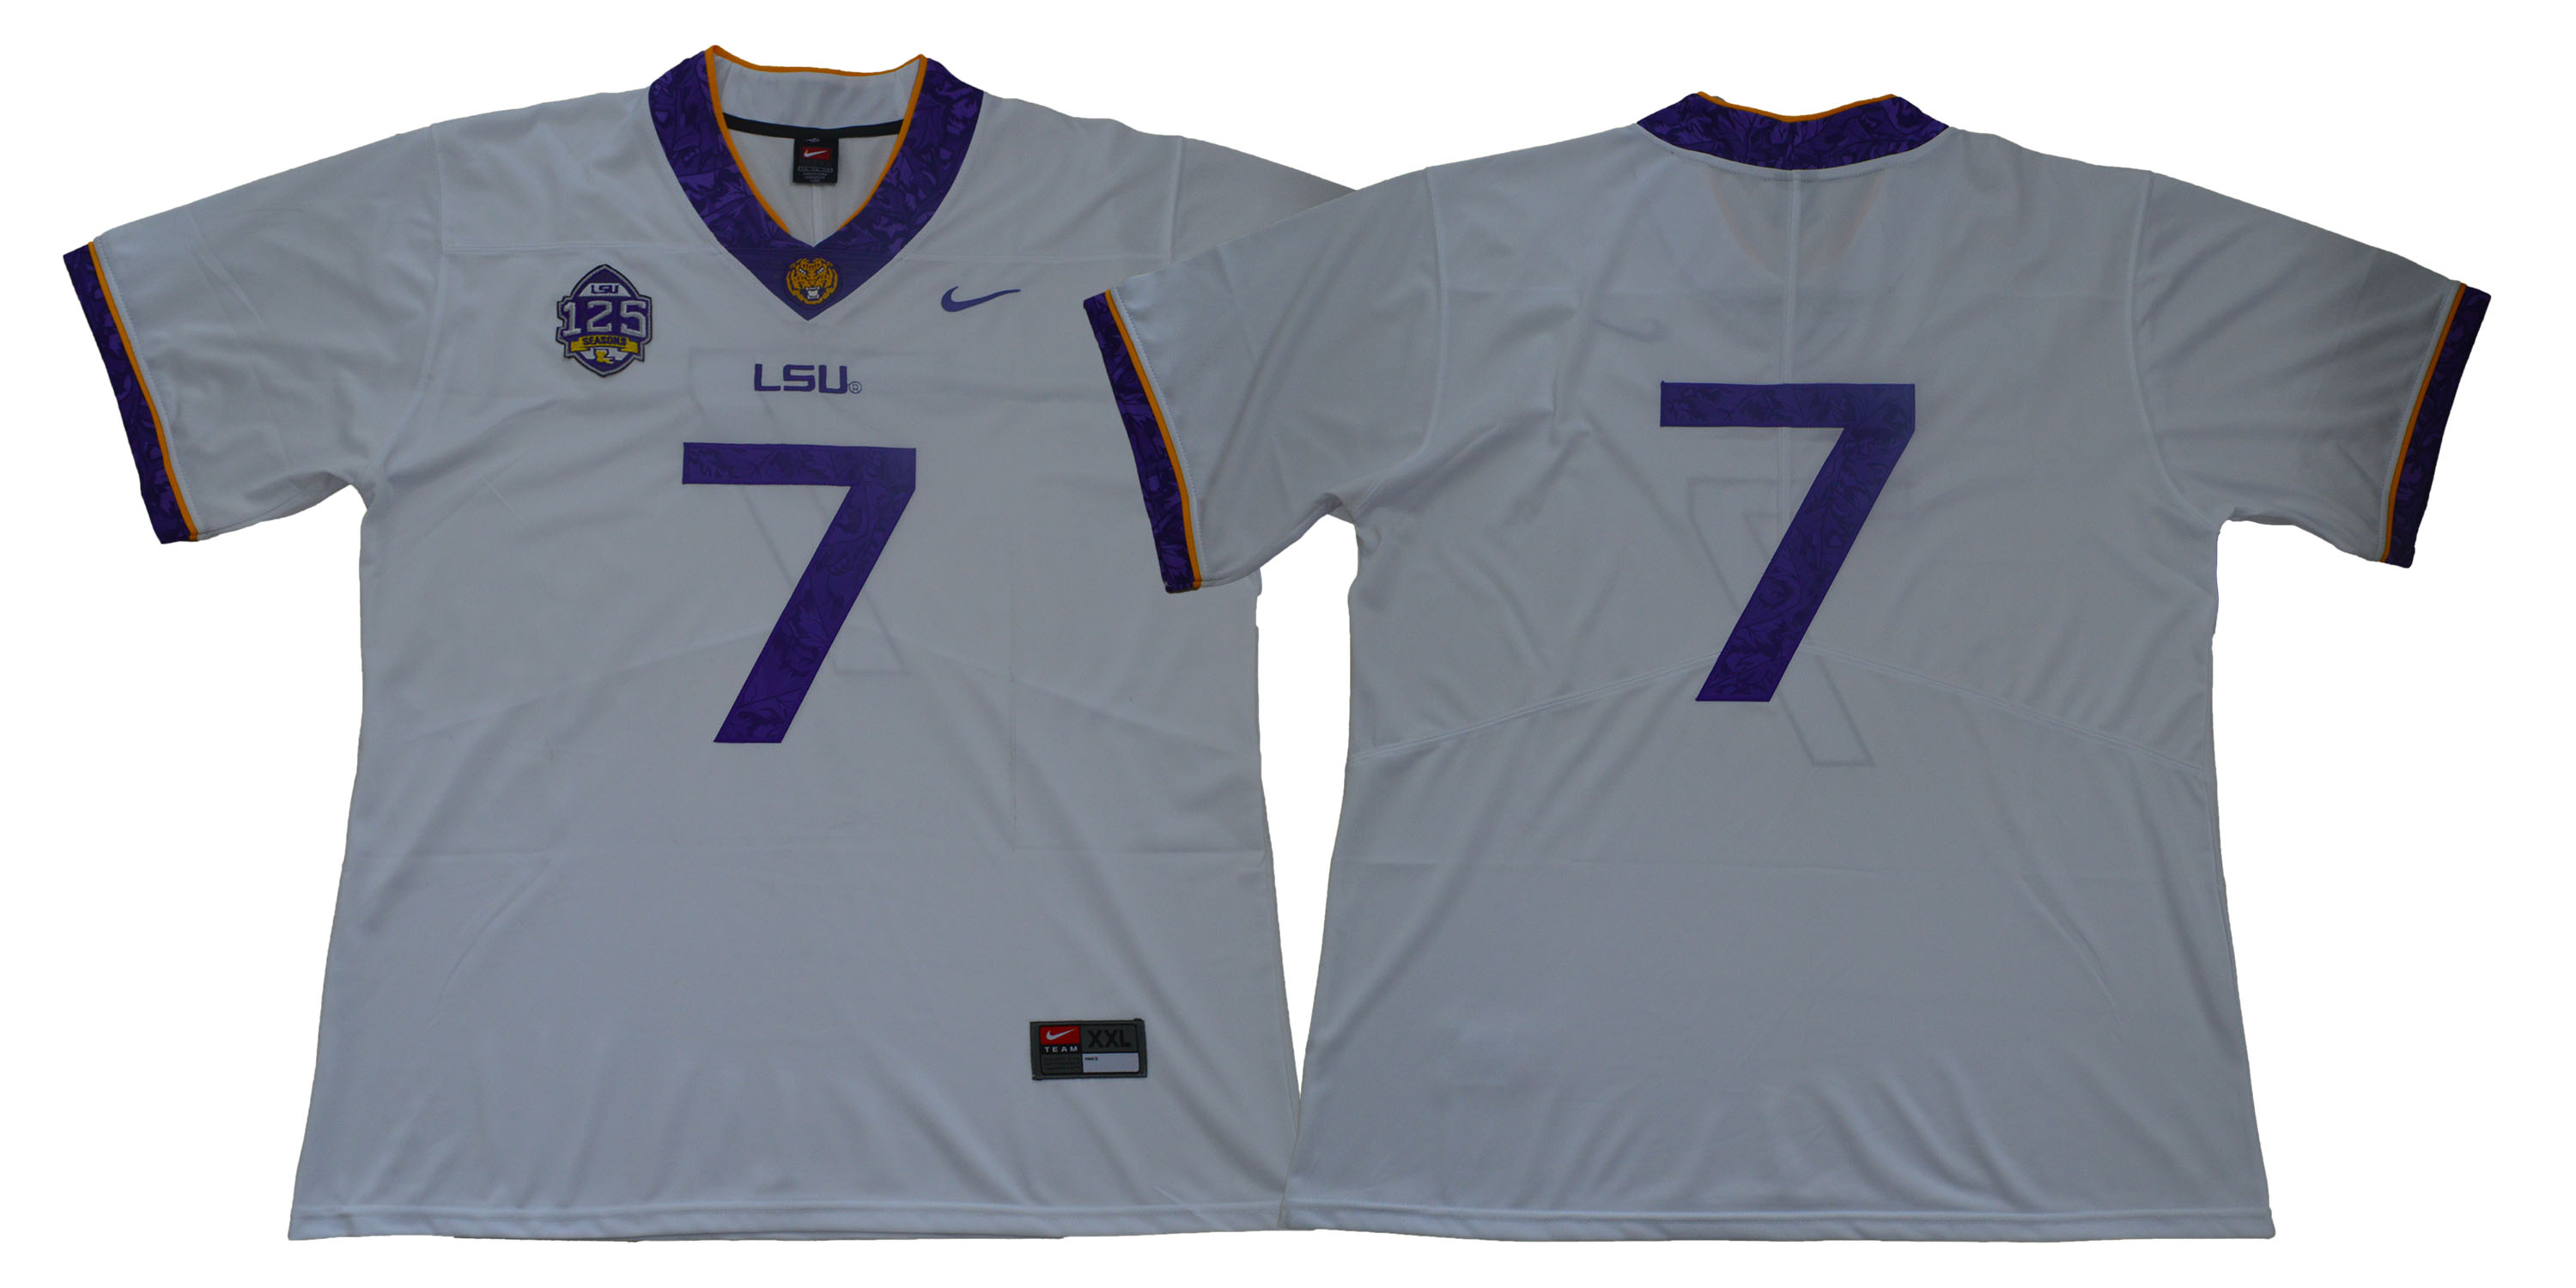 LSU Tigers #7 White 125 Sesons Nike College Football Jersey